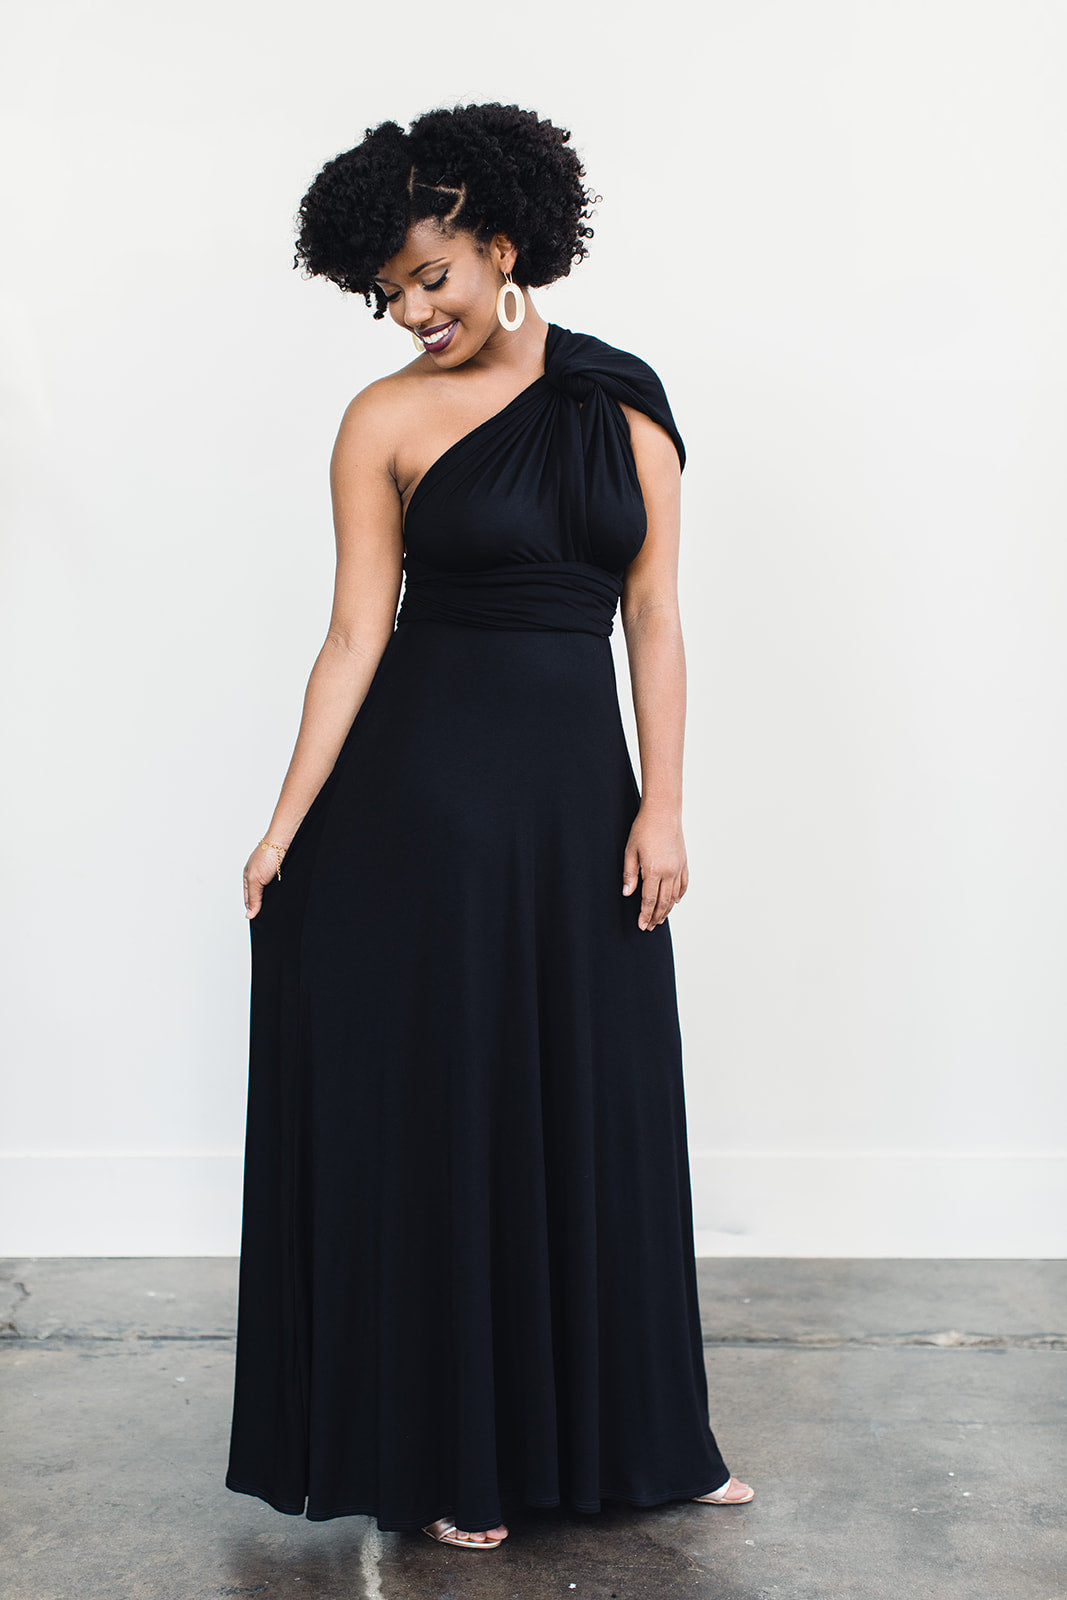 Ecofriendly black evening gown